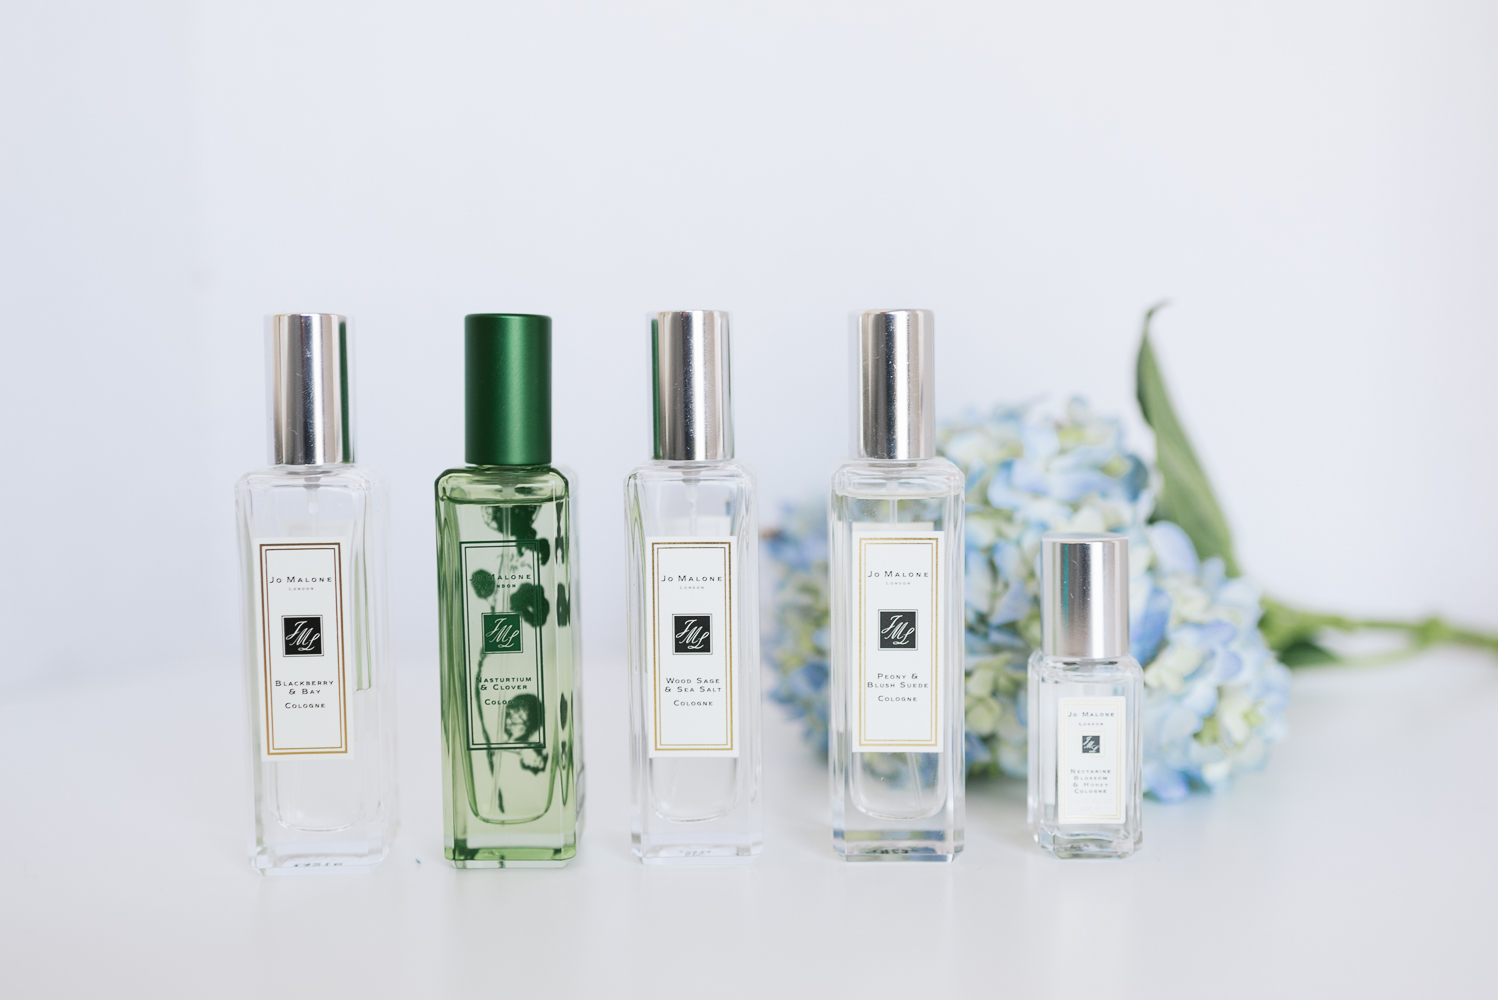 Alex Good-Beautyosaurus Lex-Review-Jo Malone Review-2016-Peony and Blush Suede-Nasturtium and Clover-Blackberry and Bay-Wood Sage and Sea Salt-Nectarine Blossom and Honey-Jo Malone Cologne Review